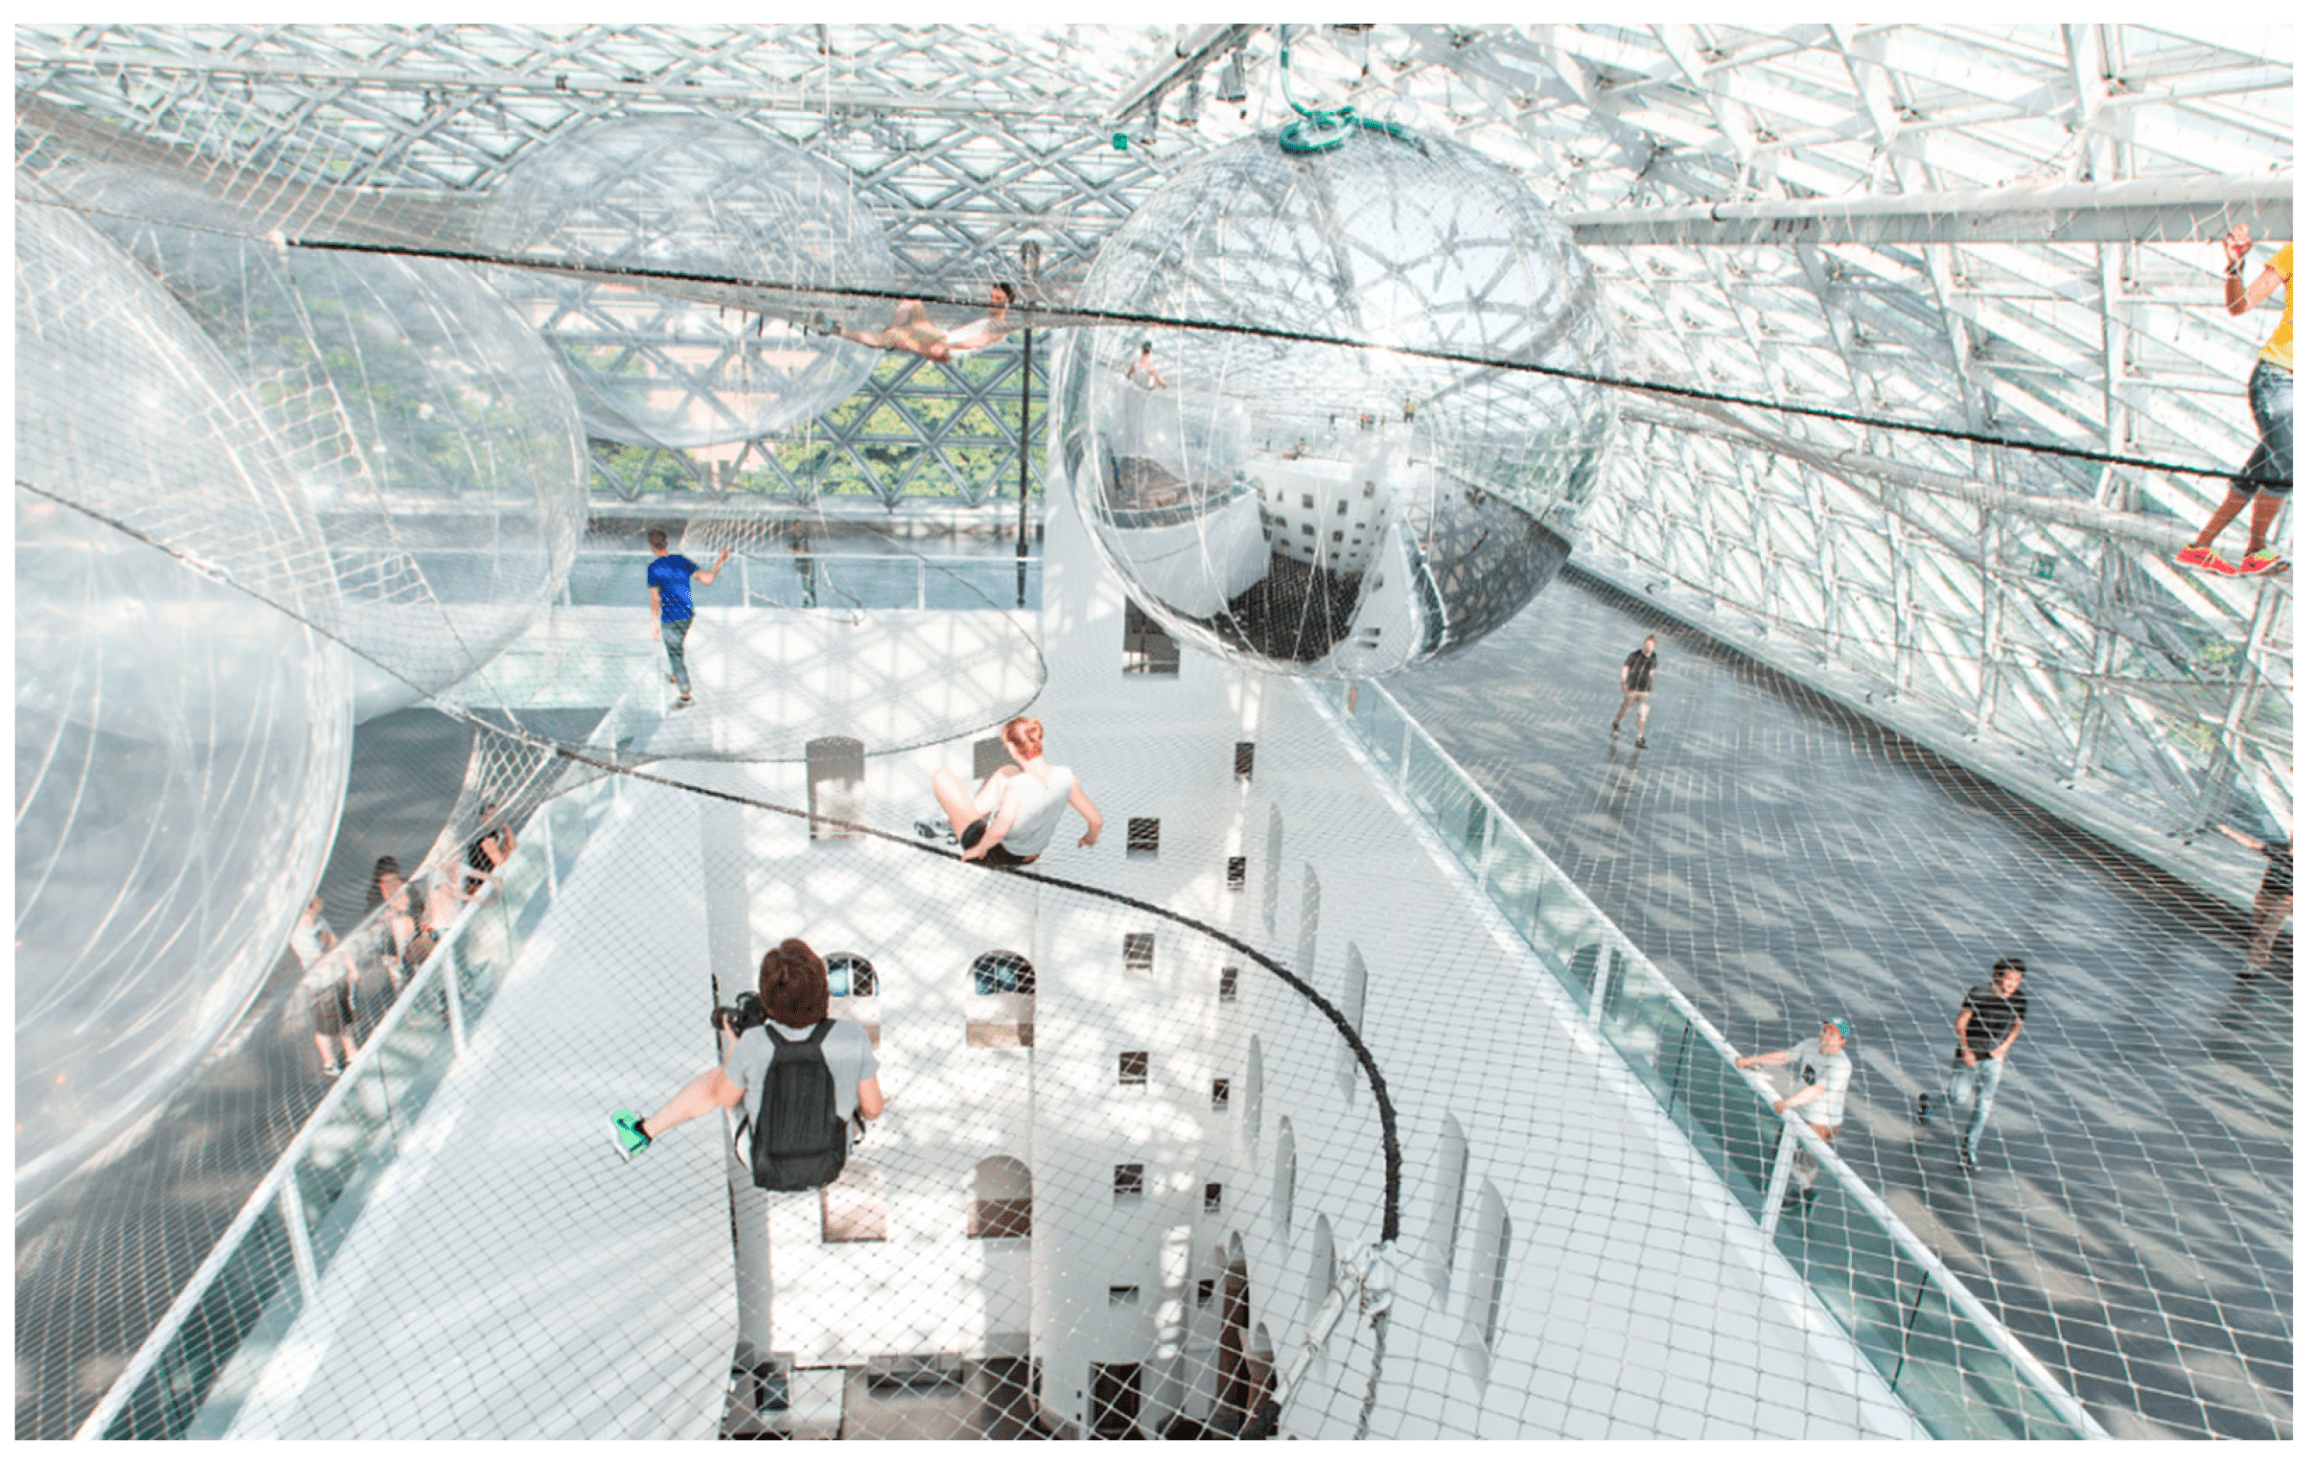 Pool Bauen Jena Arts Free Full Text Tomás Saraceno S Art Work In Orbit